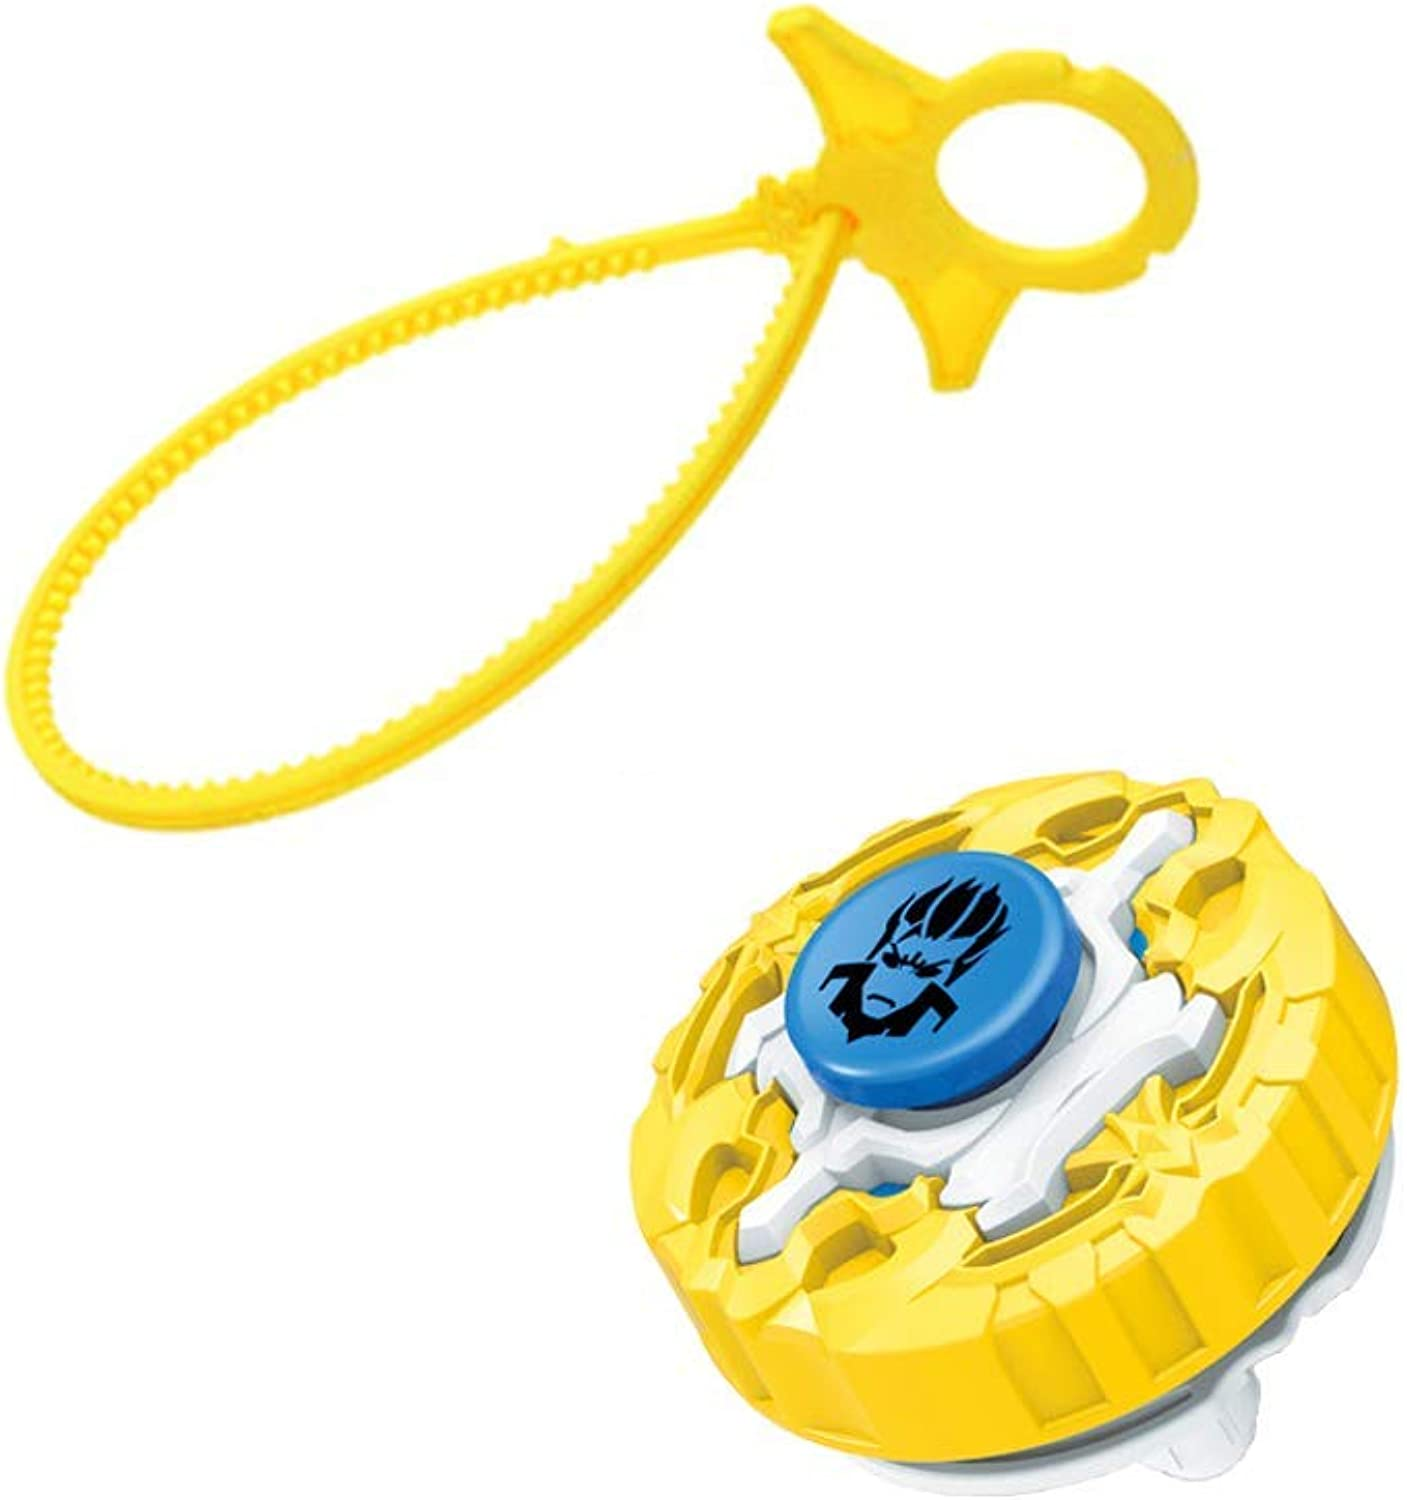 Bey Battling Blade Gyro Battle Top Game Battle Set Pull gyro Bey Burst Blade gyro Yellow